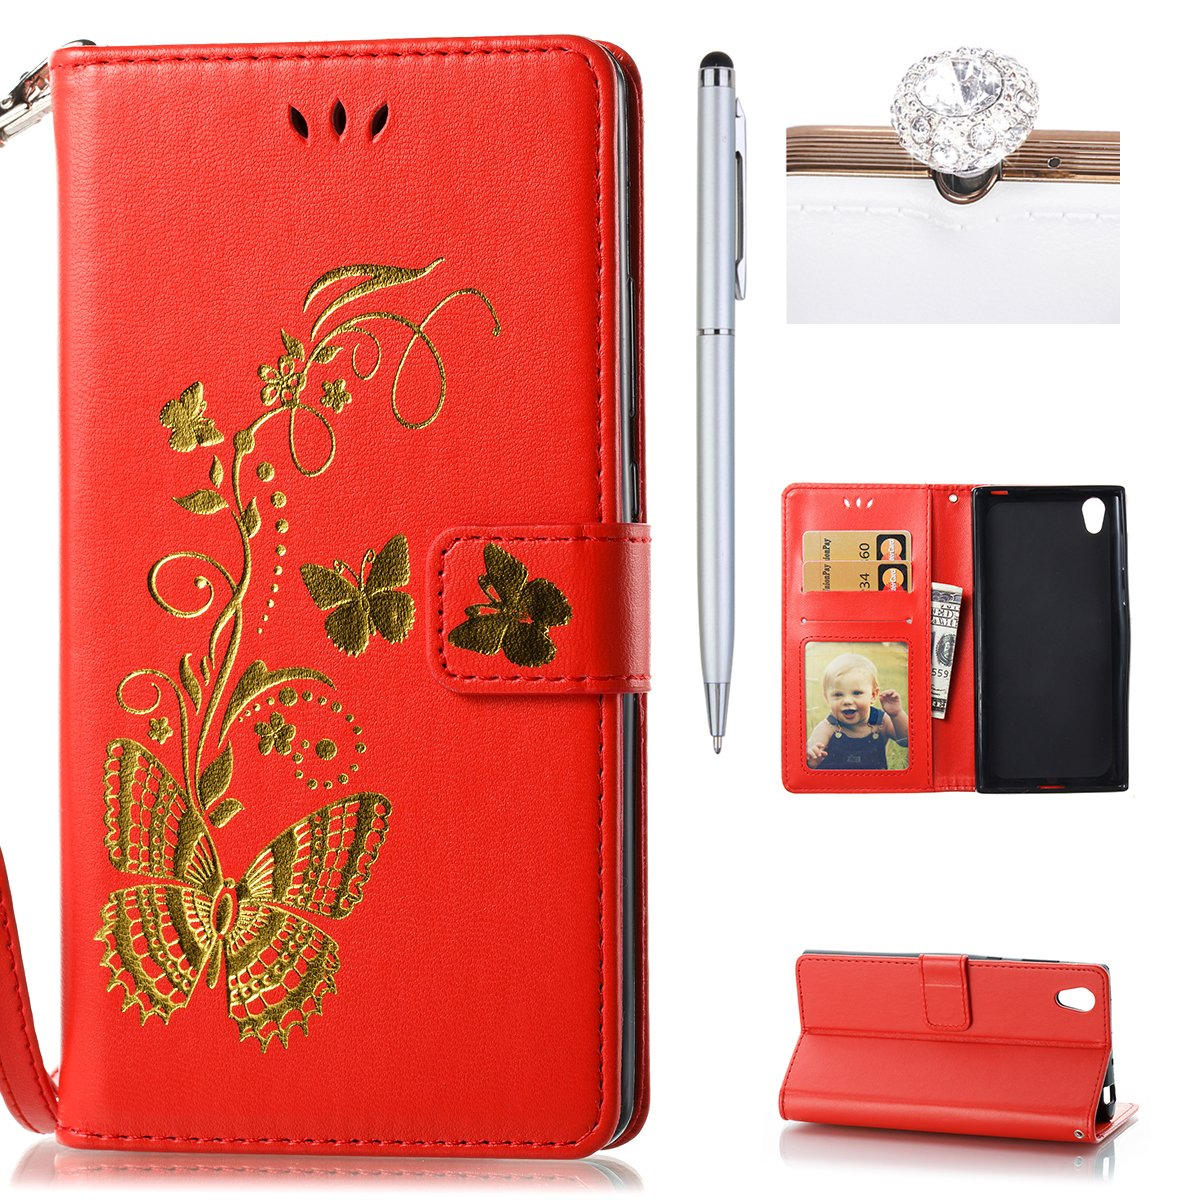 Sony Xperia L1 Case, Felfy Sony Xperia L1 Wallet Flip Case Cover, Sony Xperia L1 Case Premium Leather [Bronzing Technology] Embossed Butterfly Pattern Lanyard Cover with [Magnetic Closure][Flip Stand][Card Slots] Solid Color Folio Bookstyle Kicksand Bumper